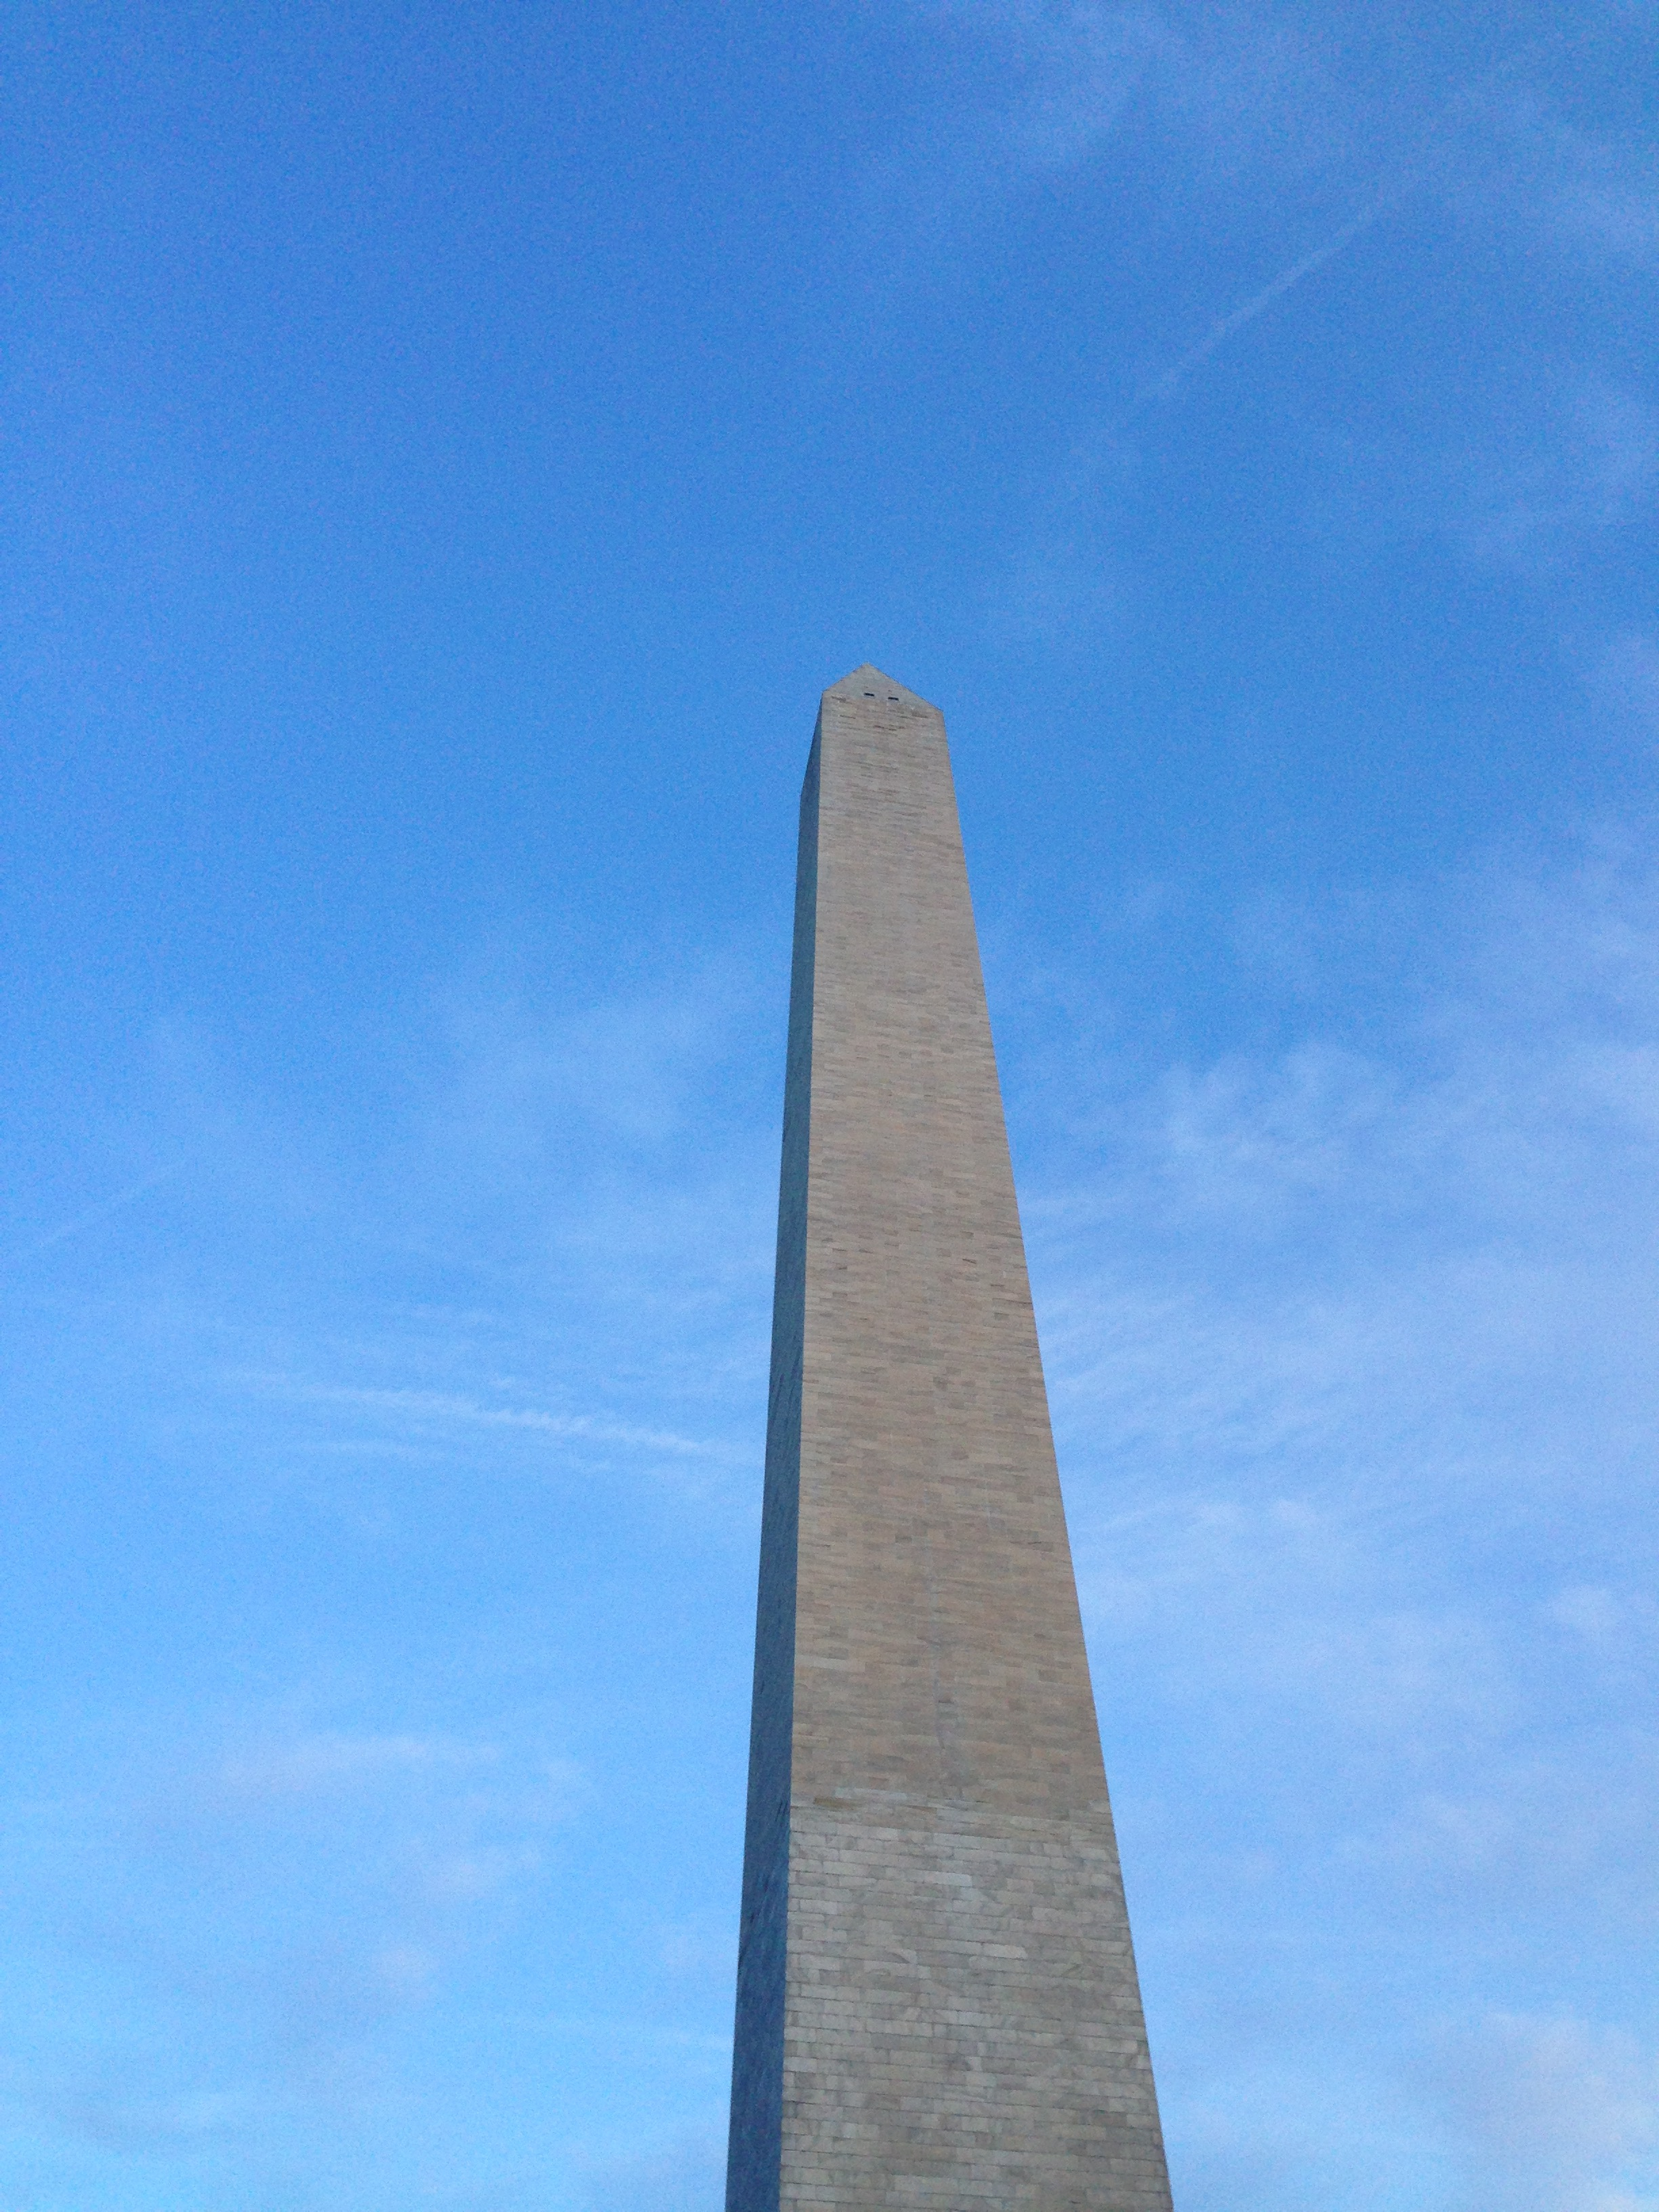 Picture of the Washington monument in December